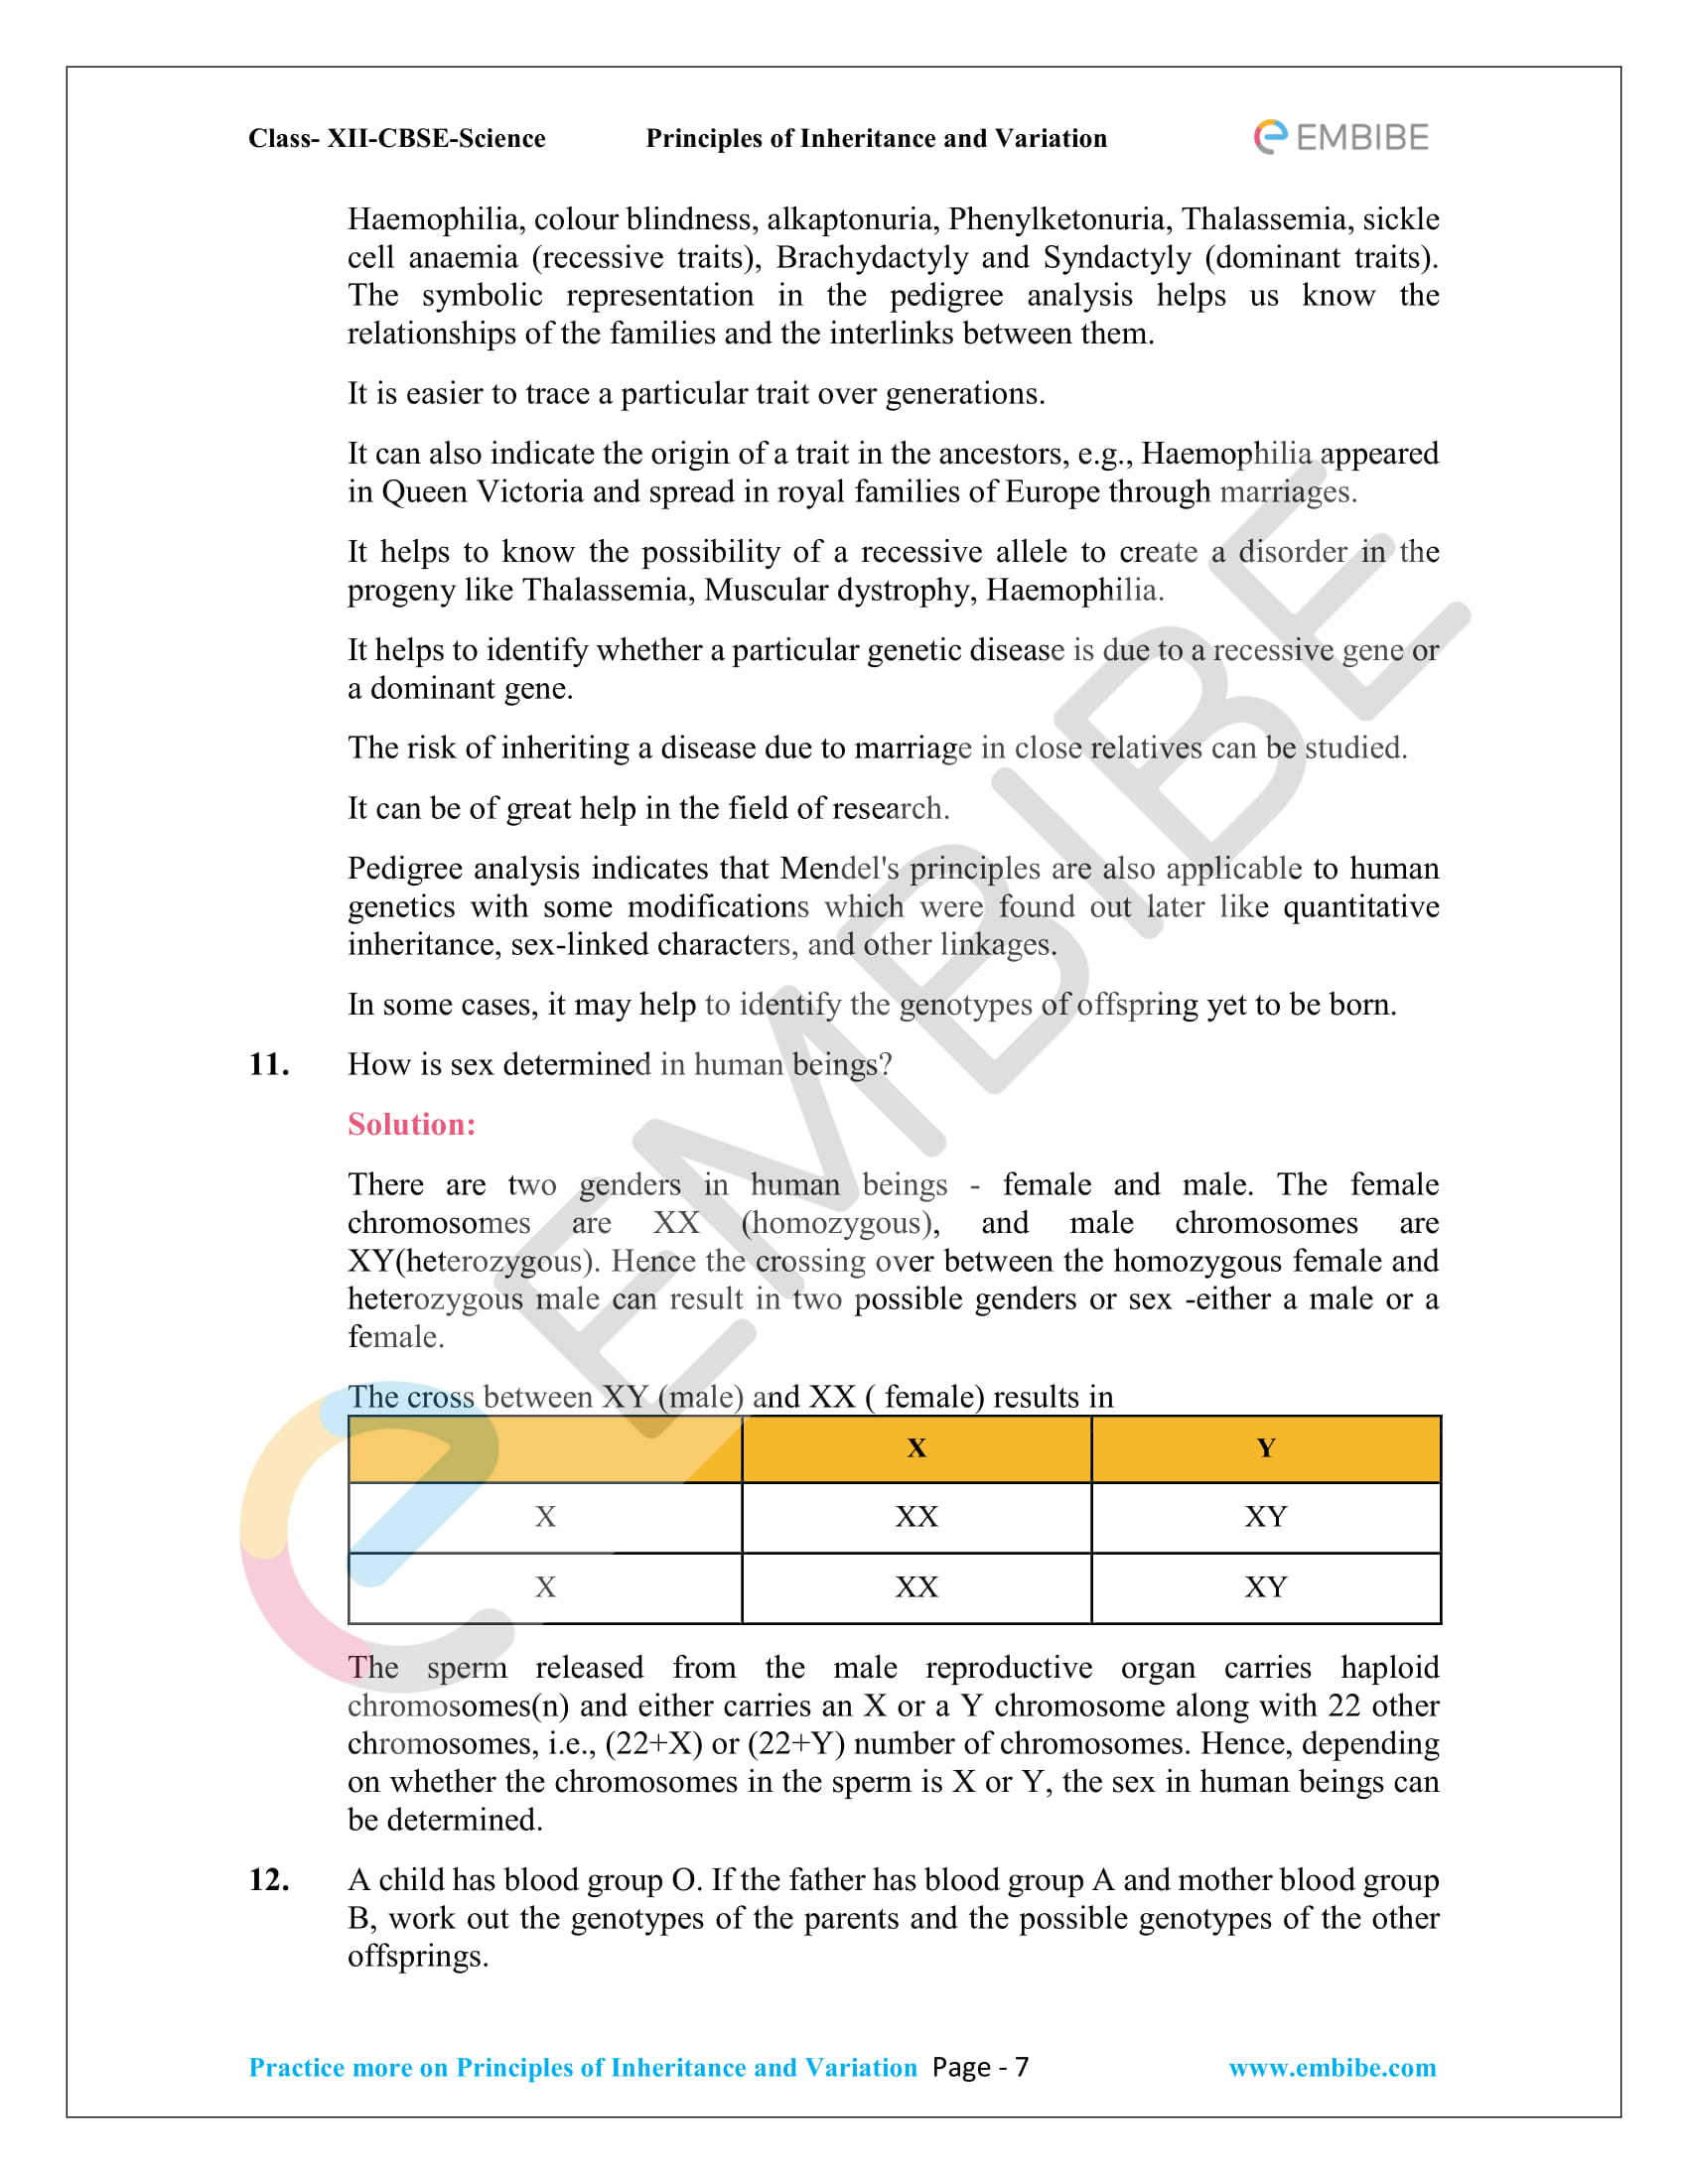 NCERT Solutions for Class 12 Biology Chapter 5: Principles Of Inheritance And Variation - 7